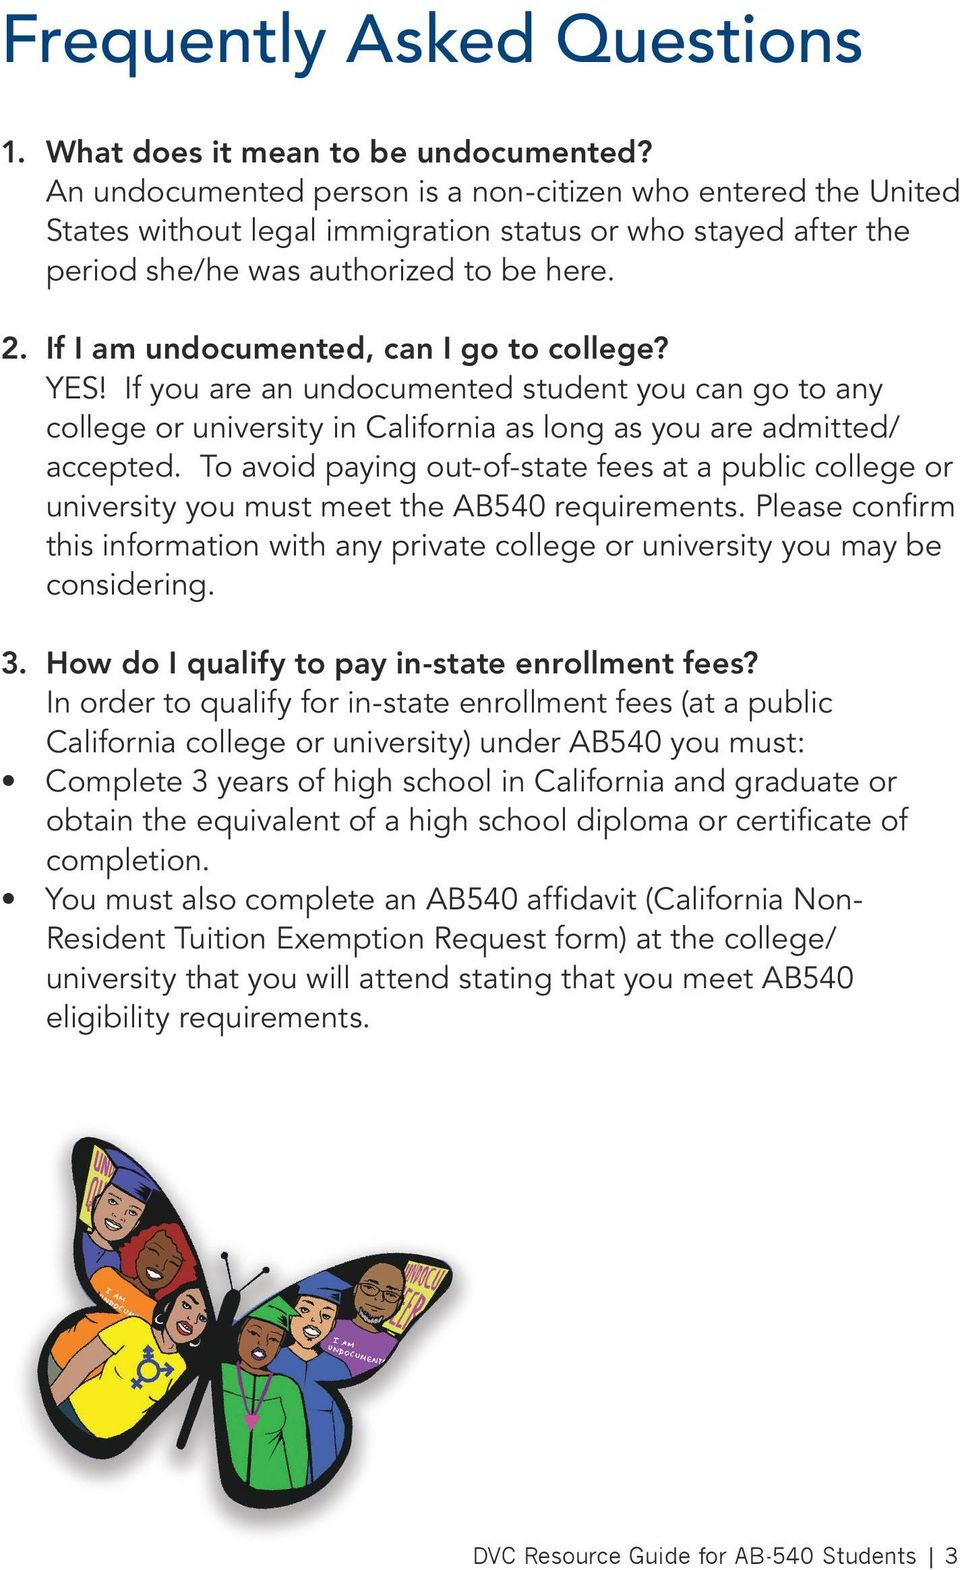 If I am undocumented, can I go to college? YES! If you are an undocumented student you can go to any college or university in California as long as you are admitted/ accepted.